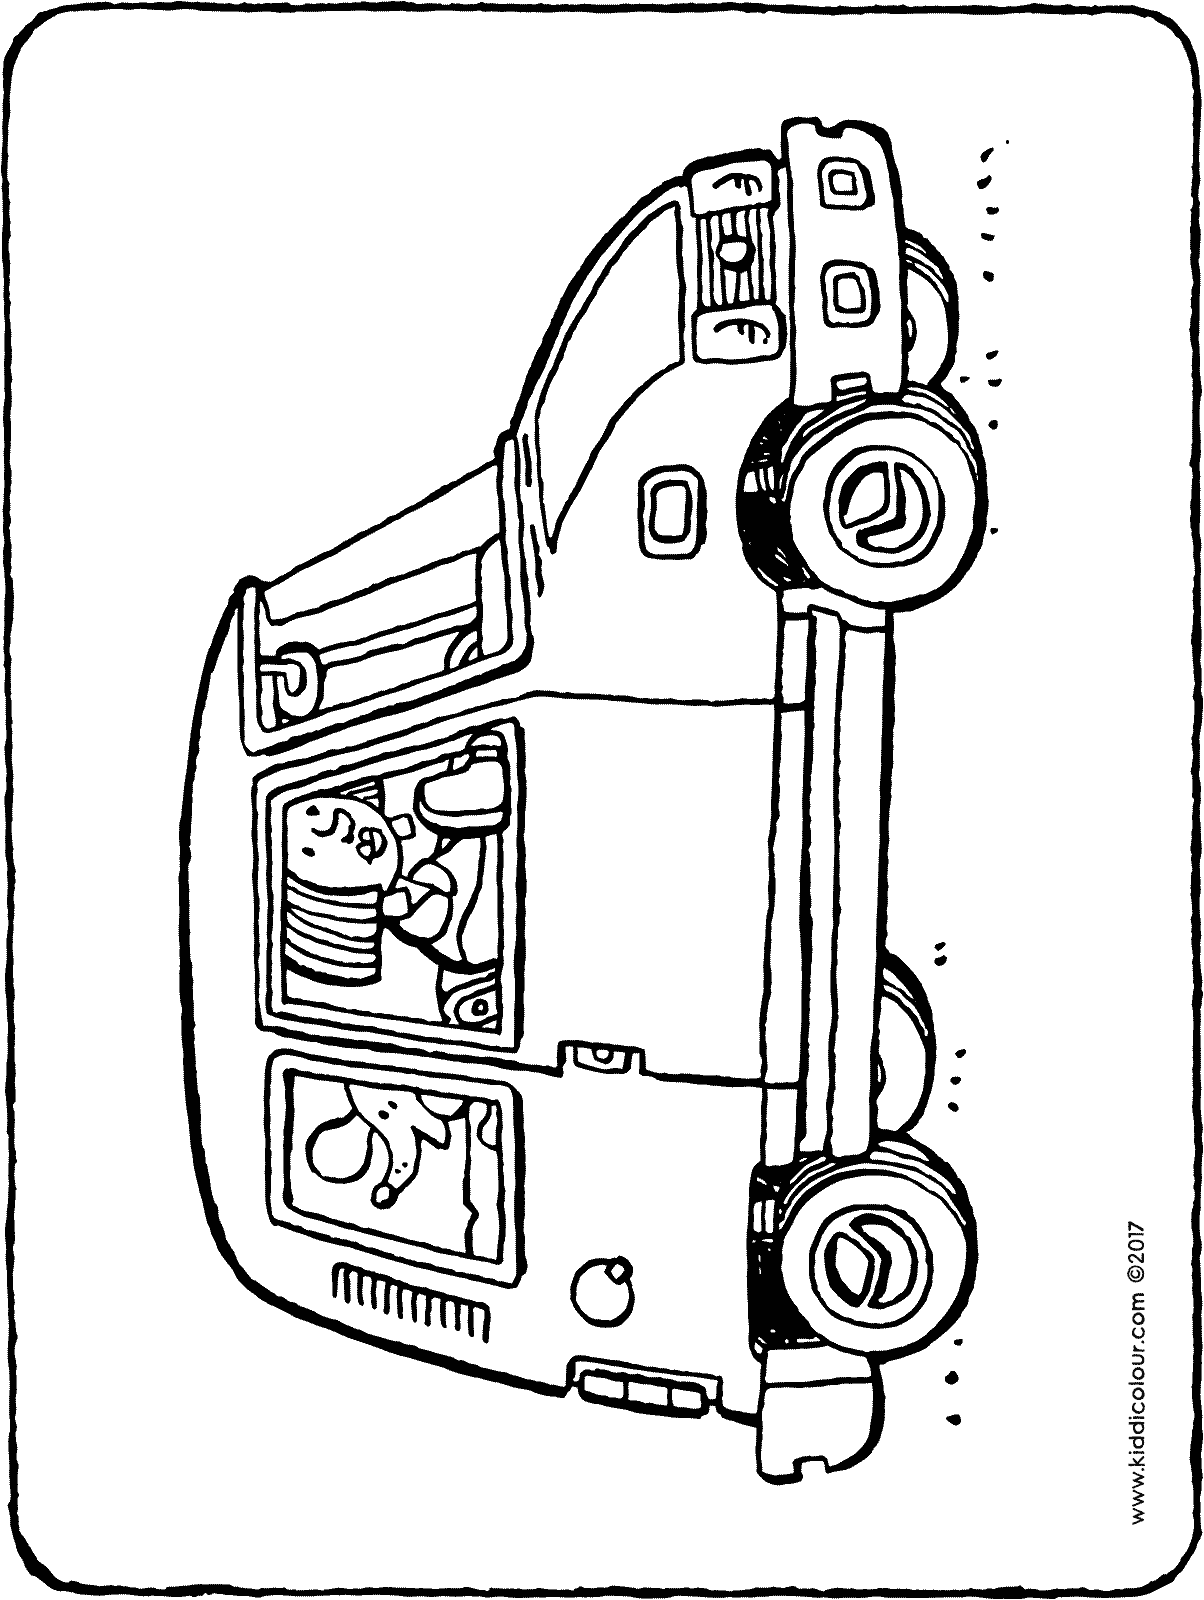 a dog in a car colouring page drawing picture 01H